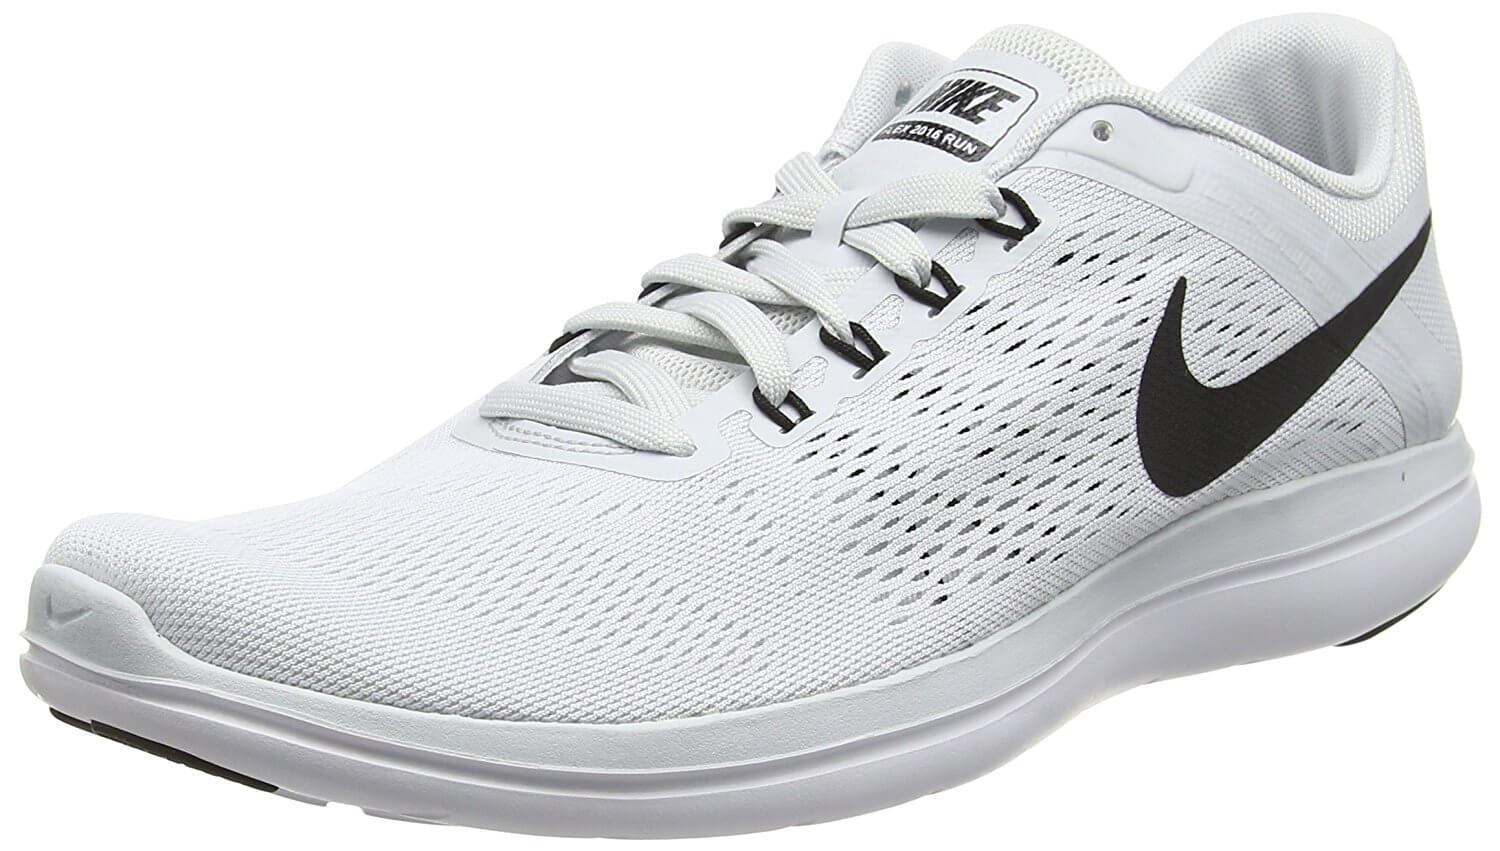 Best Type Of Shoes For Nurses To Wear